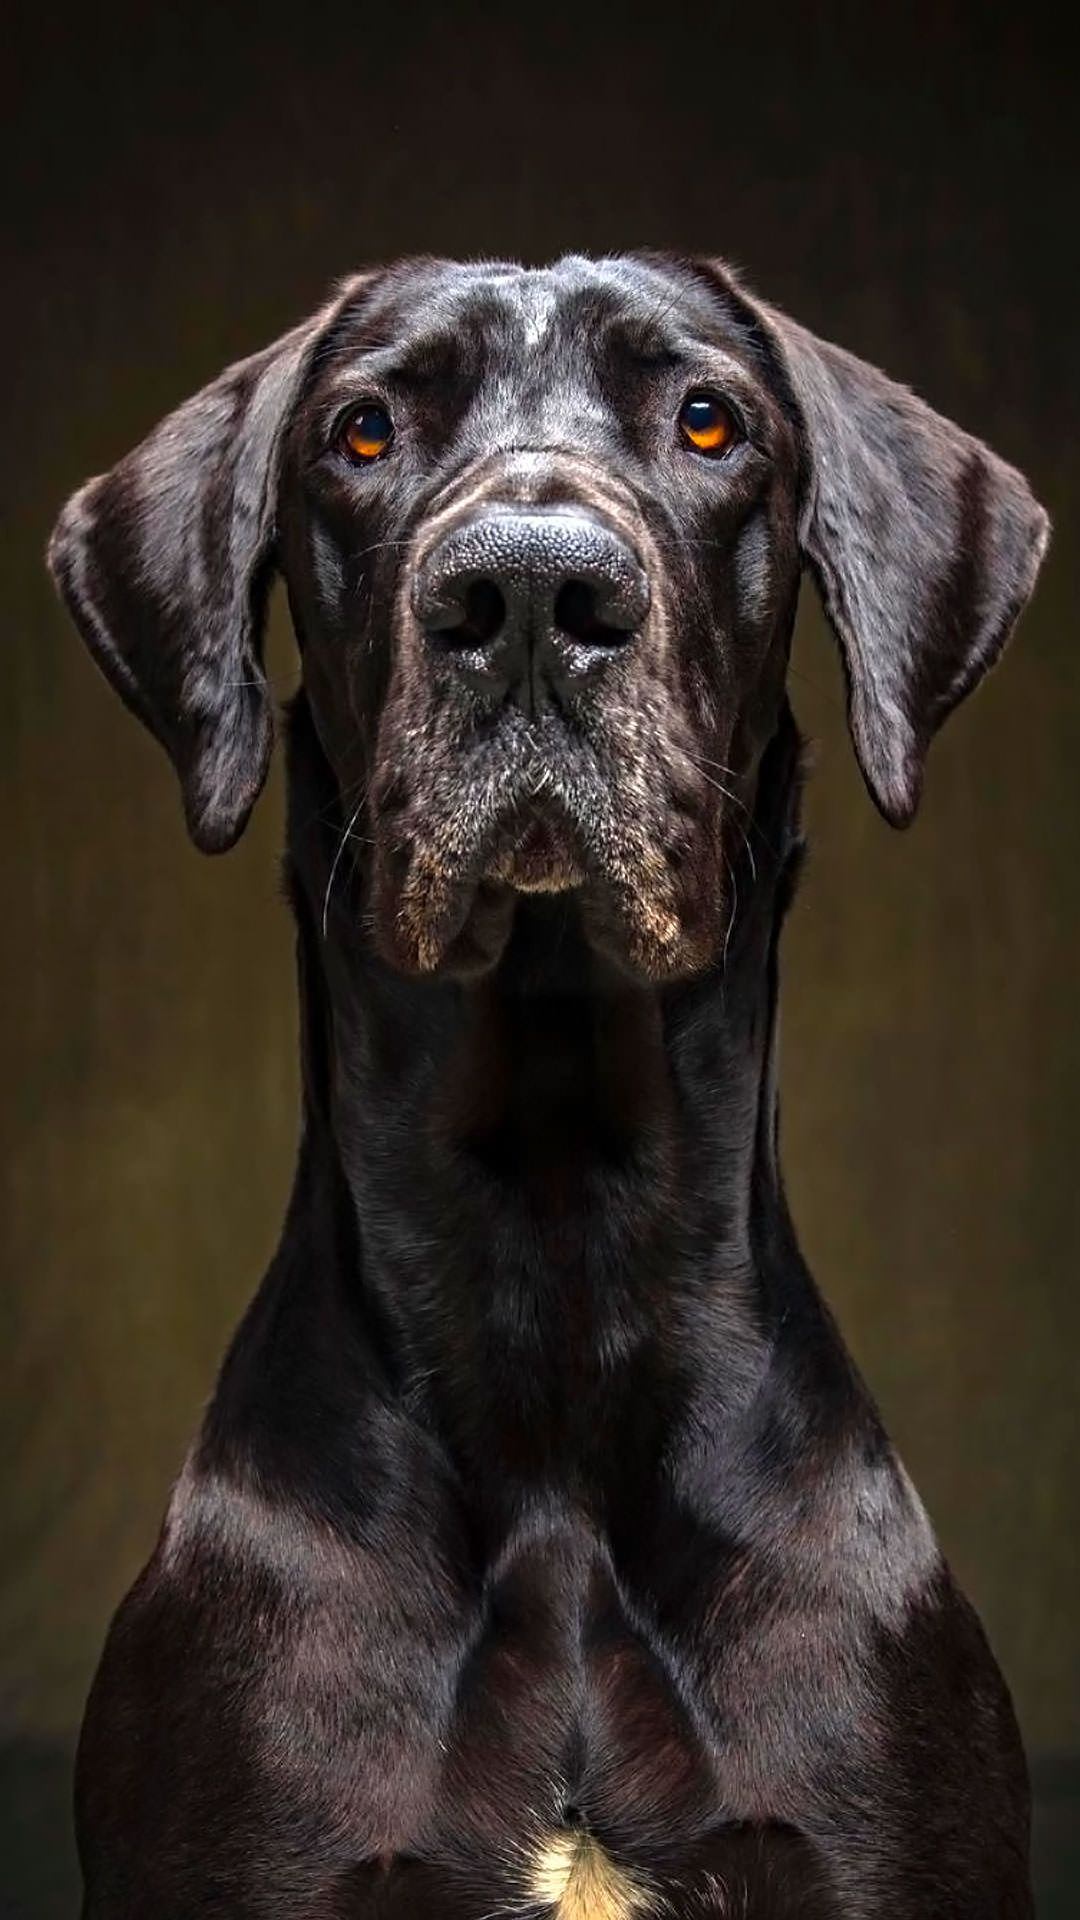 Dog Portrait Ig Vincentjmusi 1080x1920 I Imgur Com Submitted By Team Pancakes To Dog Photography Studio Dog Portrait Photography Pet Photography Studio